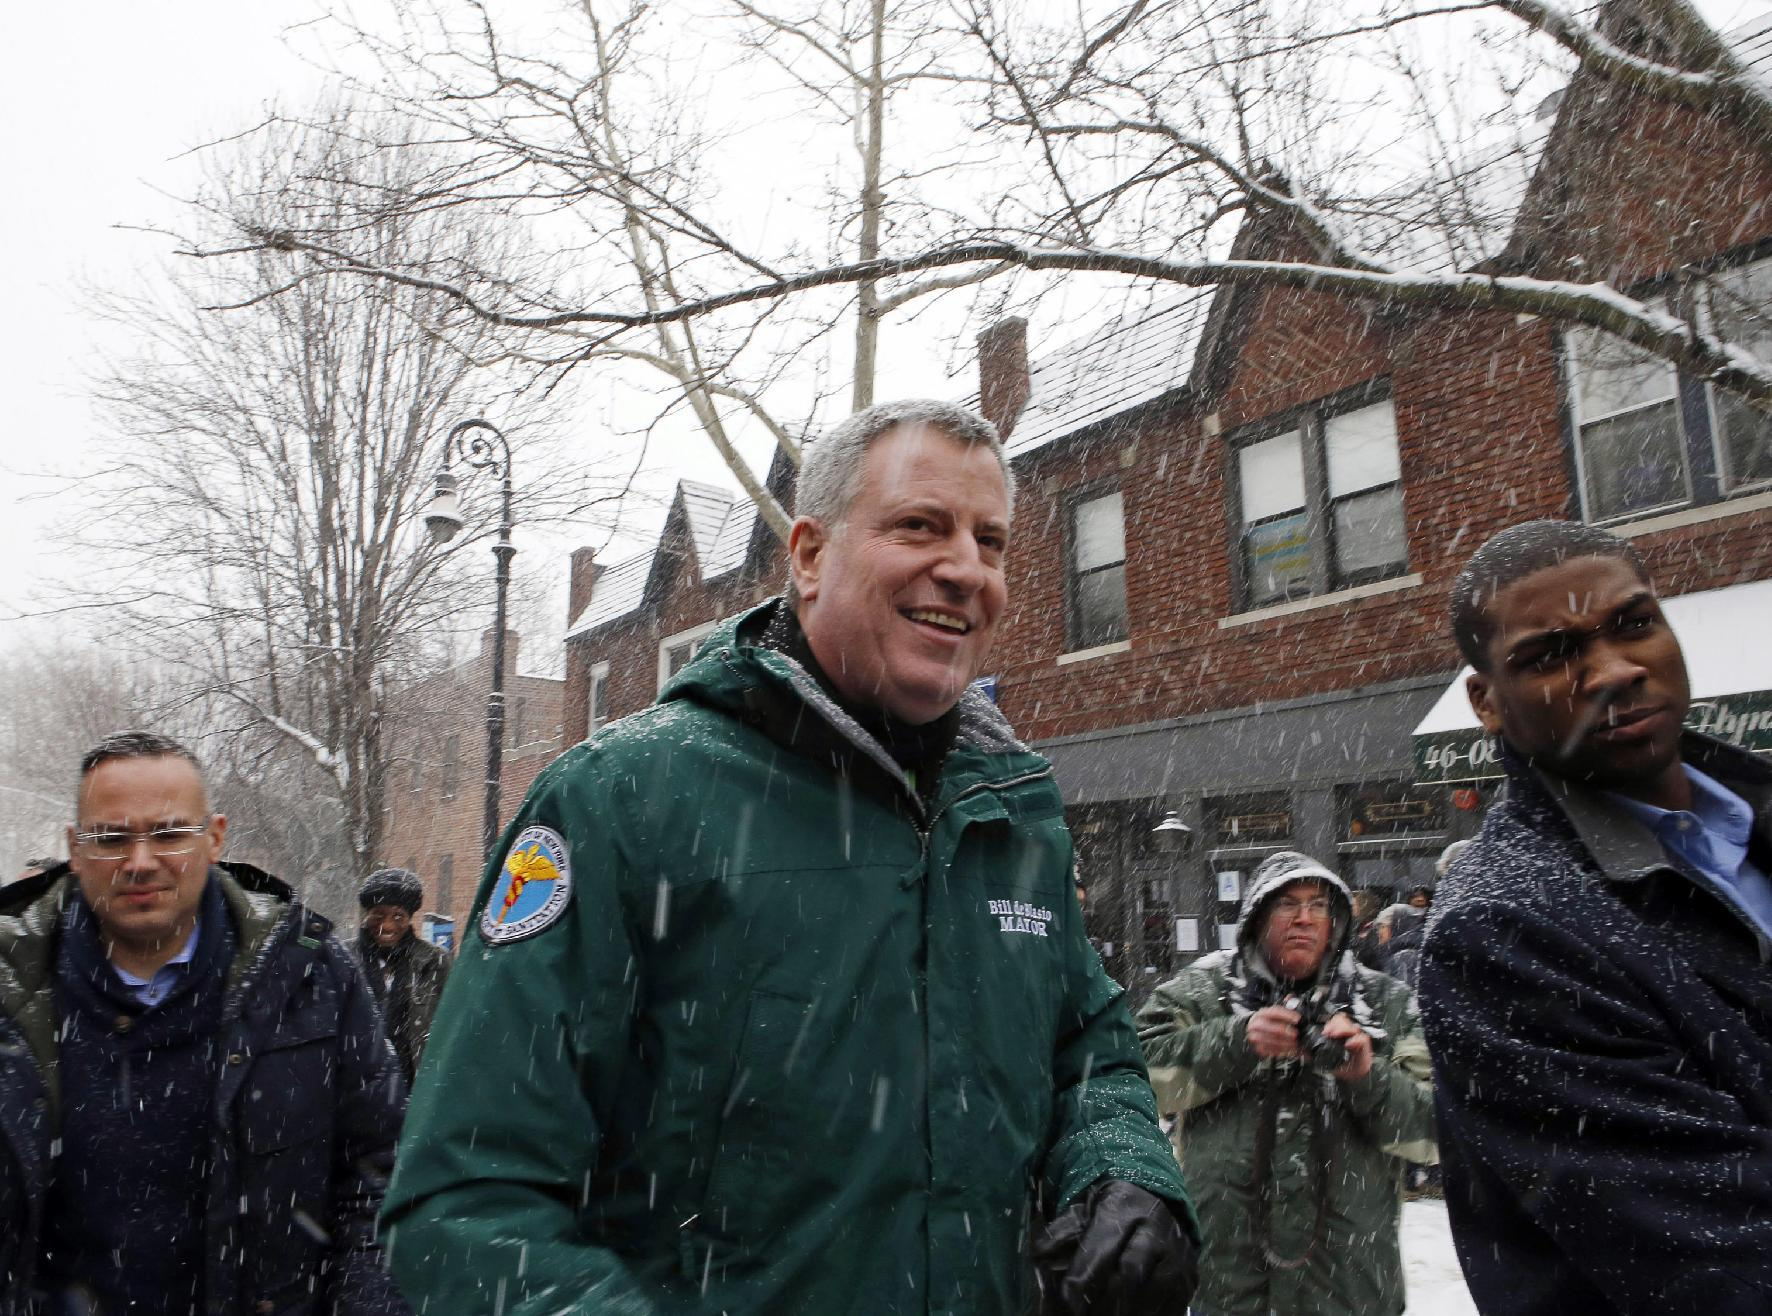 NYC mayor to skip St. Patrick's parade over policy on gays